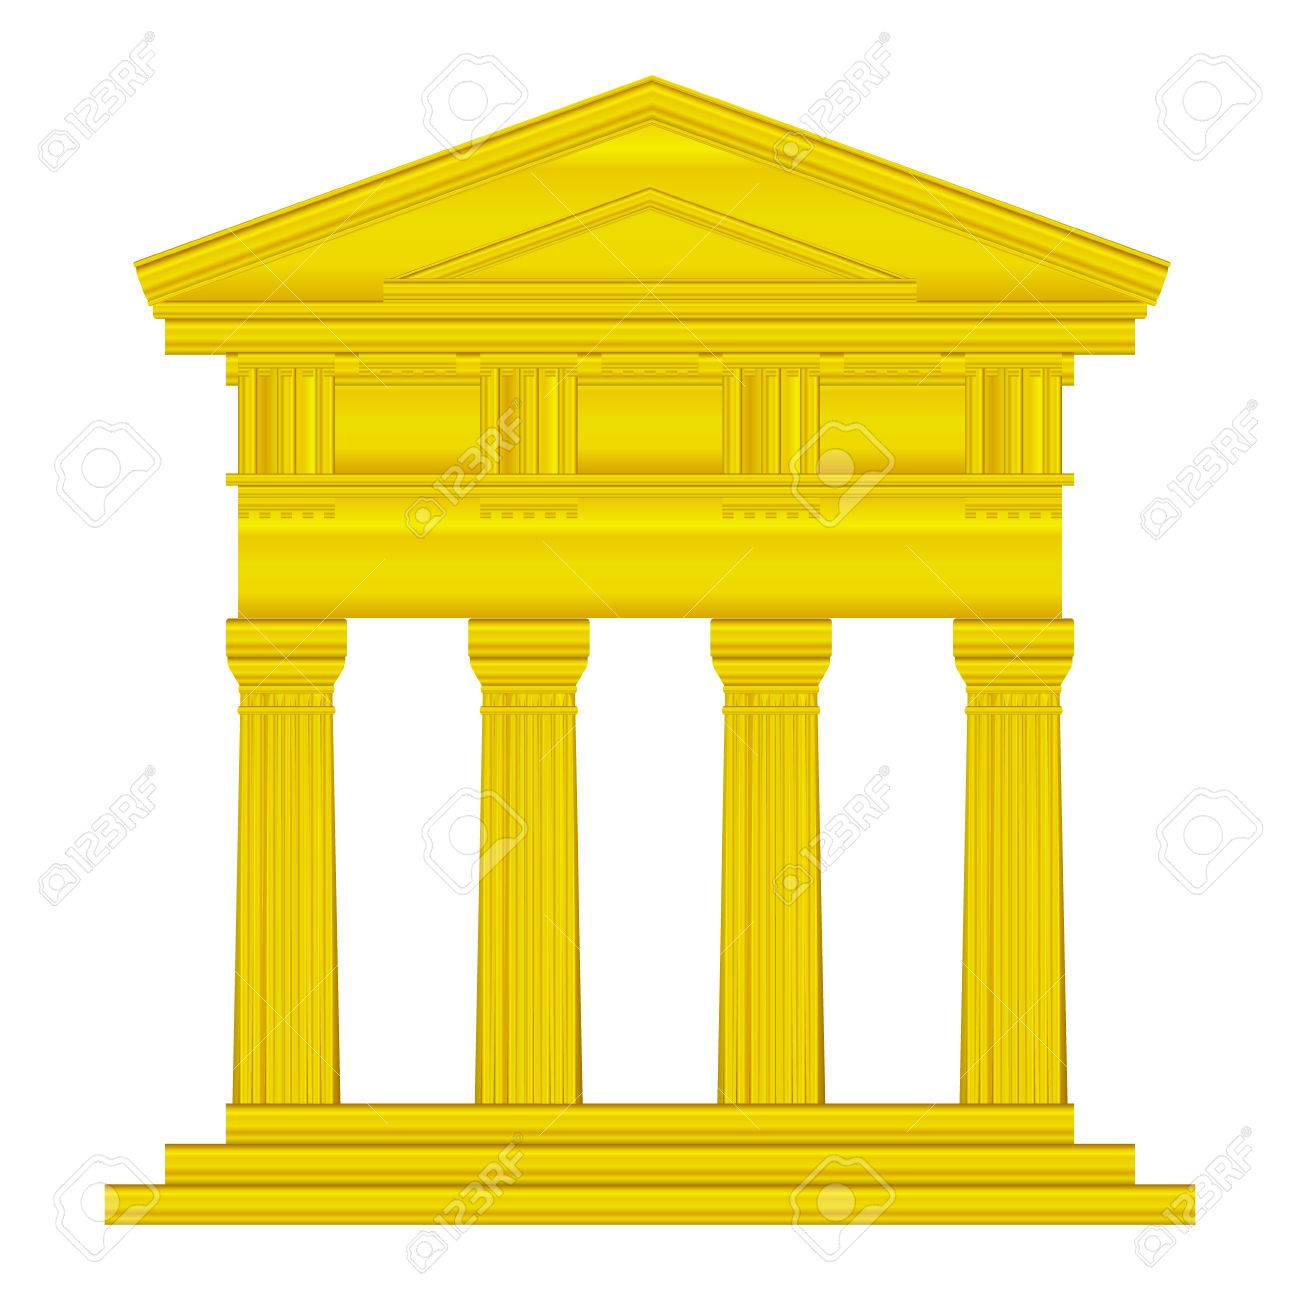 Gold doric temple isolated on white background. Stock Vector - 27273986